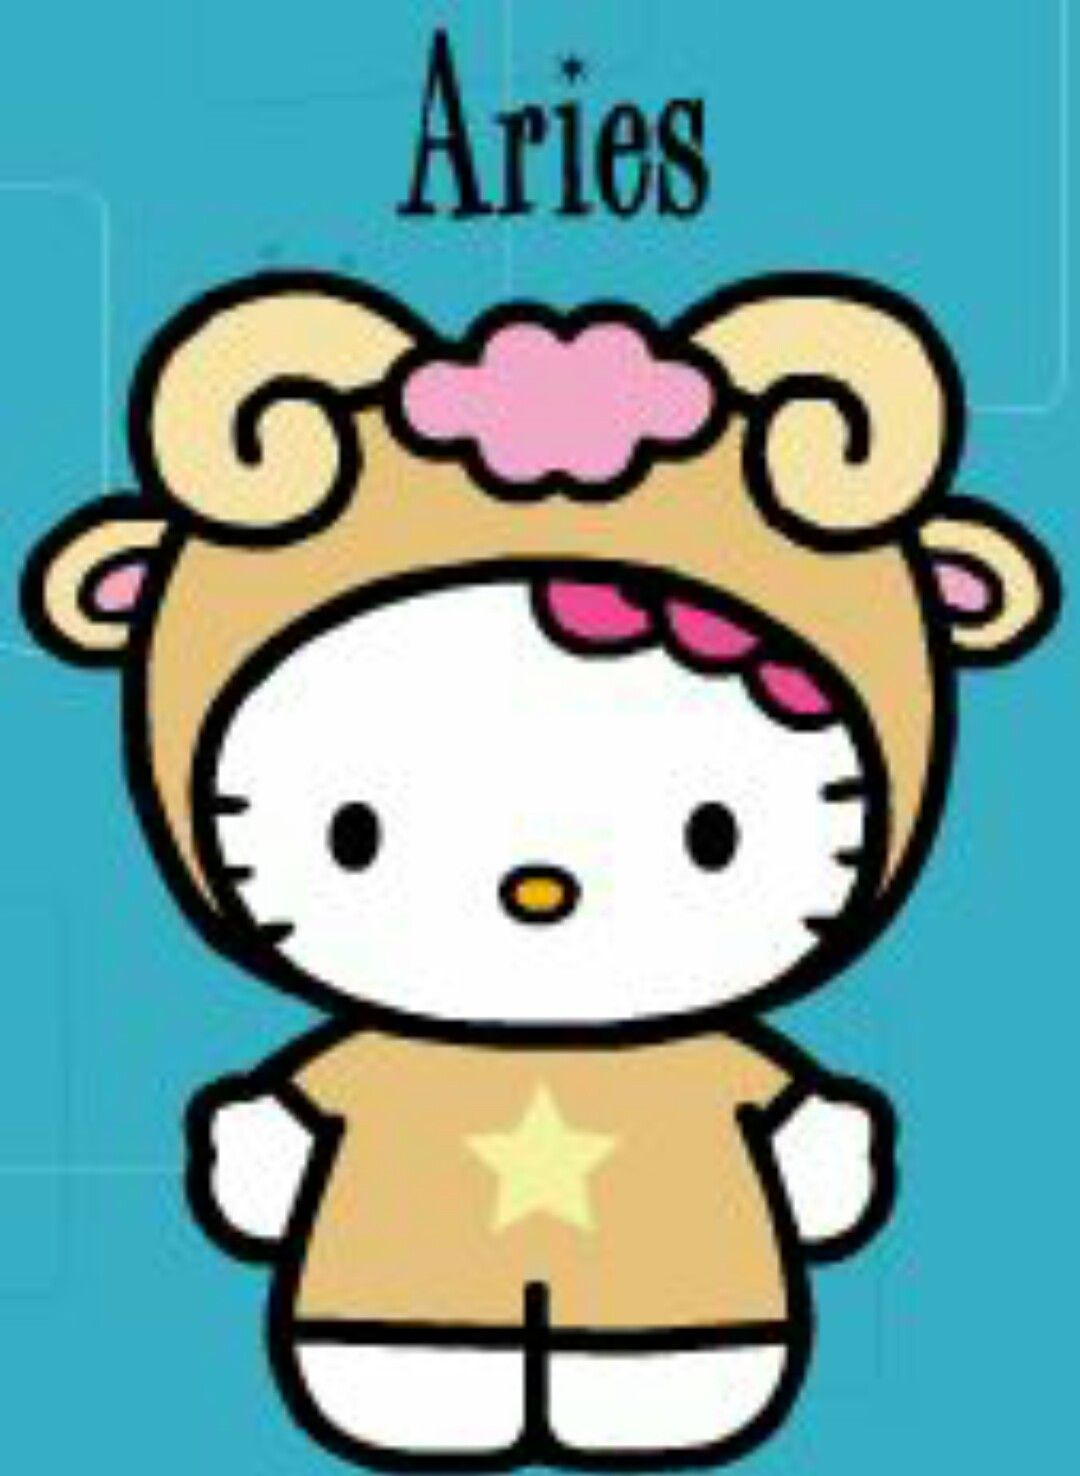 Pin By Brittany On A Aries 4 Hello Kitty Pictures Hello Kitty Wallpaper Hello Kitty Characters